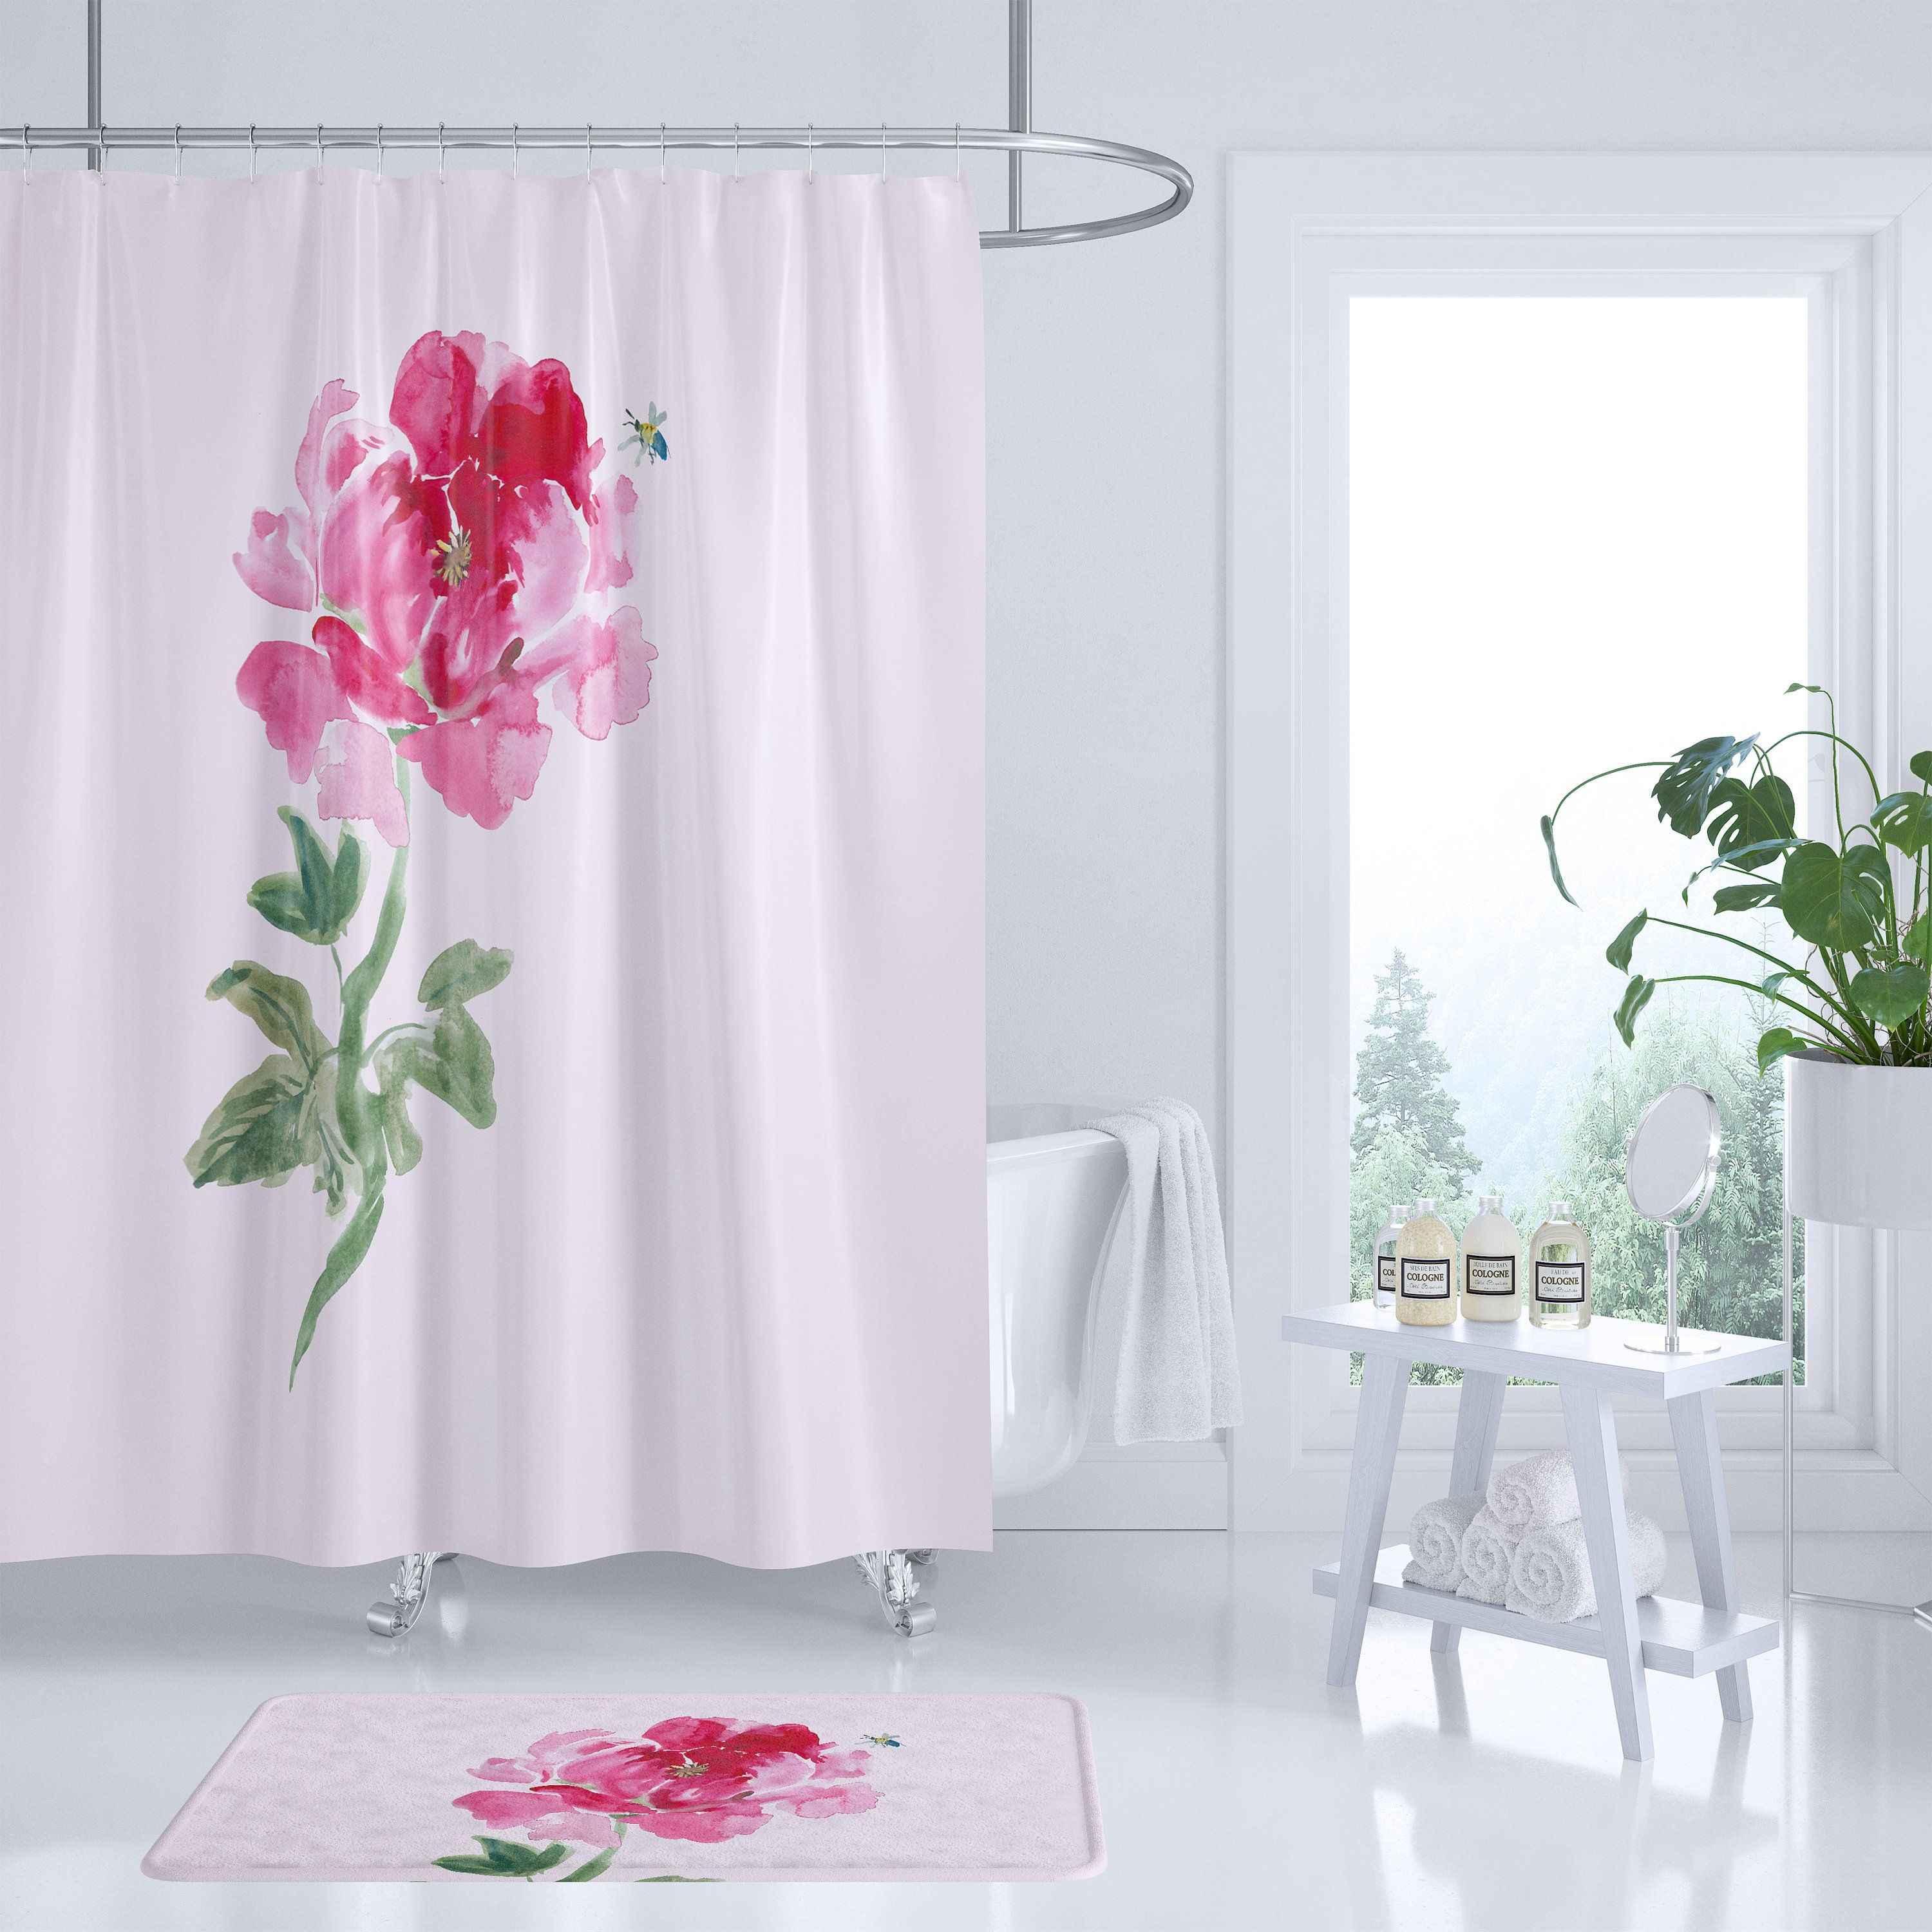 Peony Shower Curtain Pink Floral Fabric Watercolor Etsy Floral Shower Curtains Floral Shower White Shower Curtain